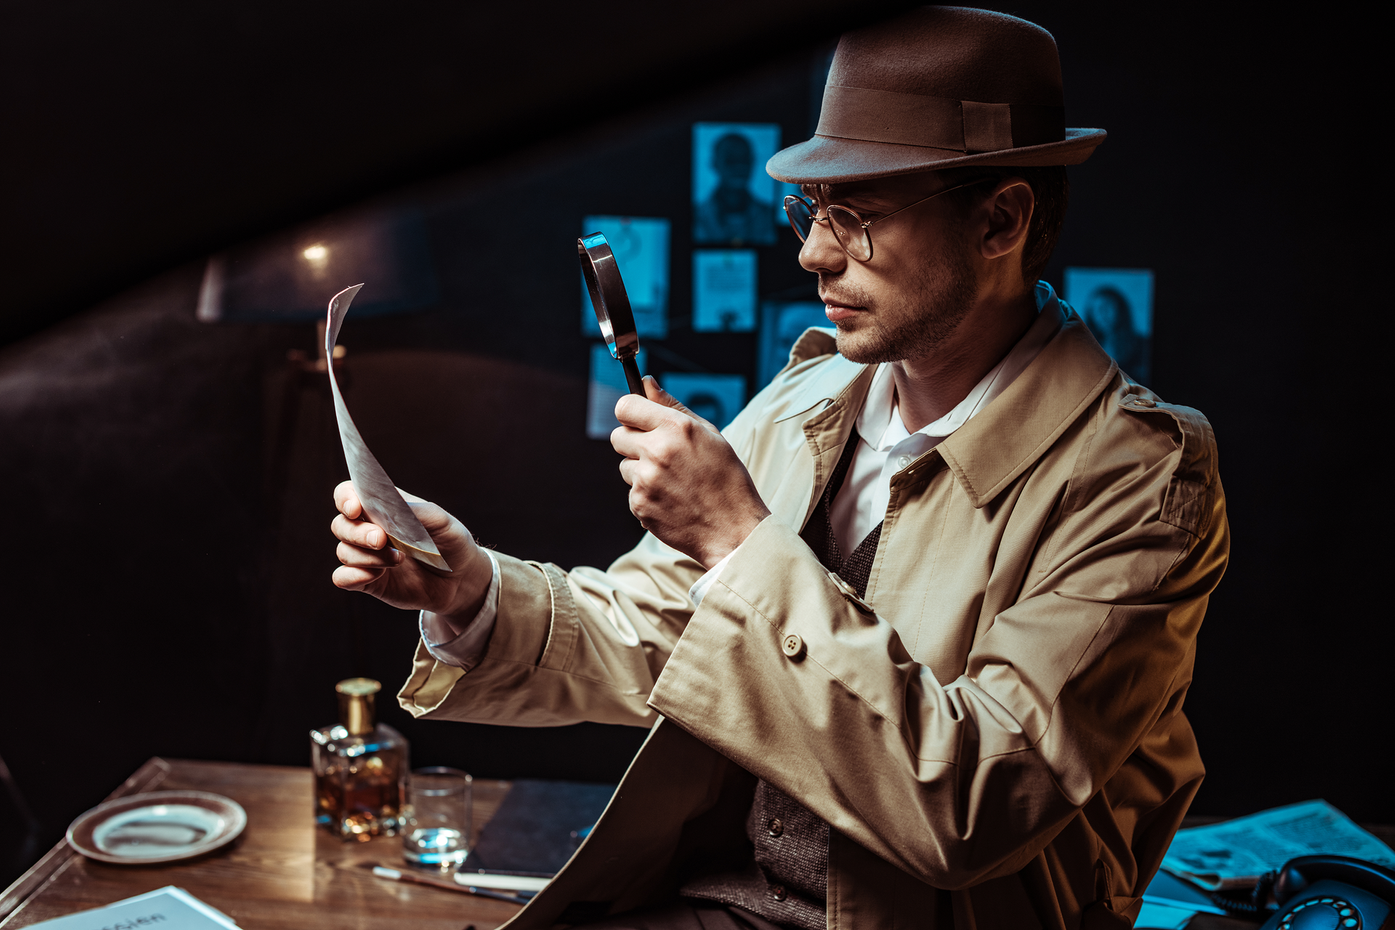 Sherlock Holmes with magnifying glass